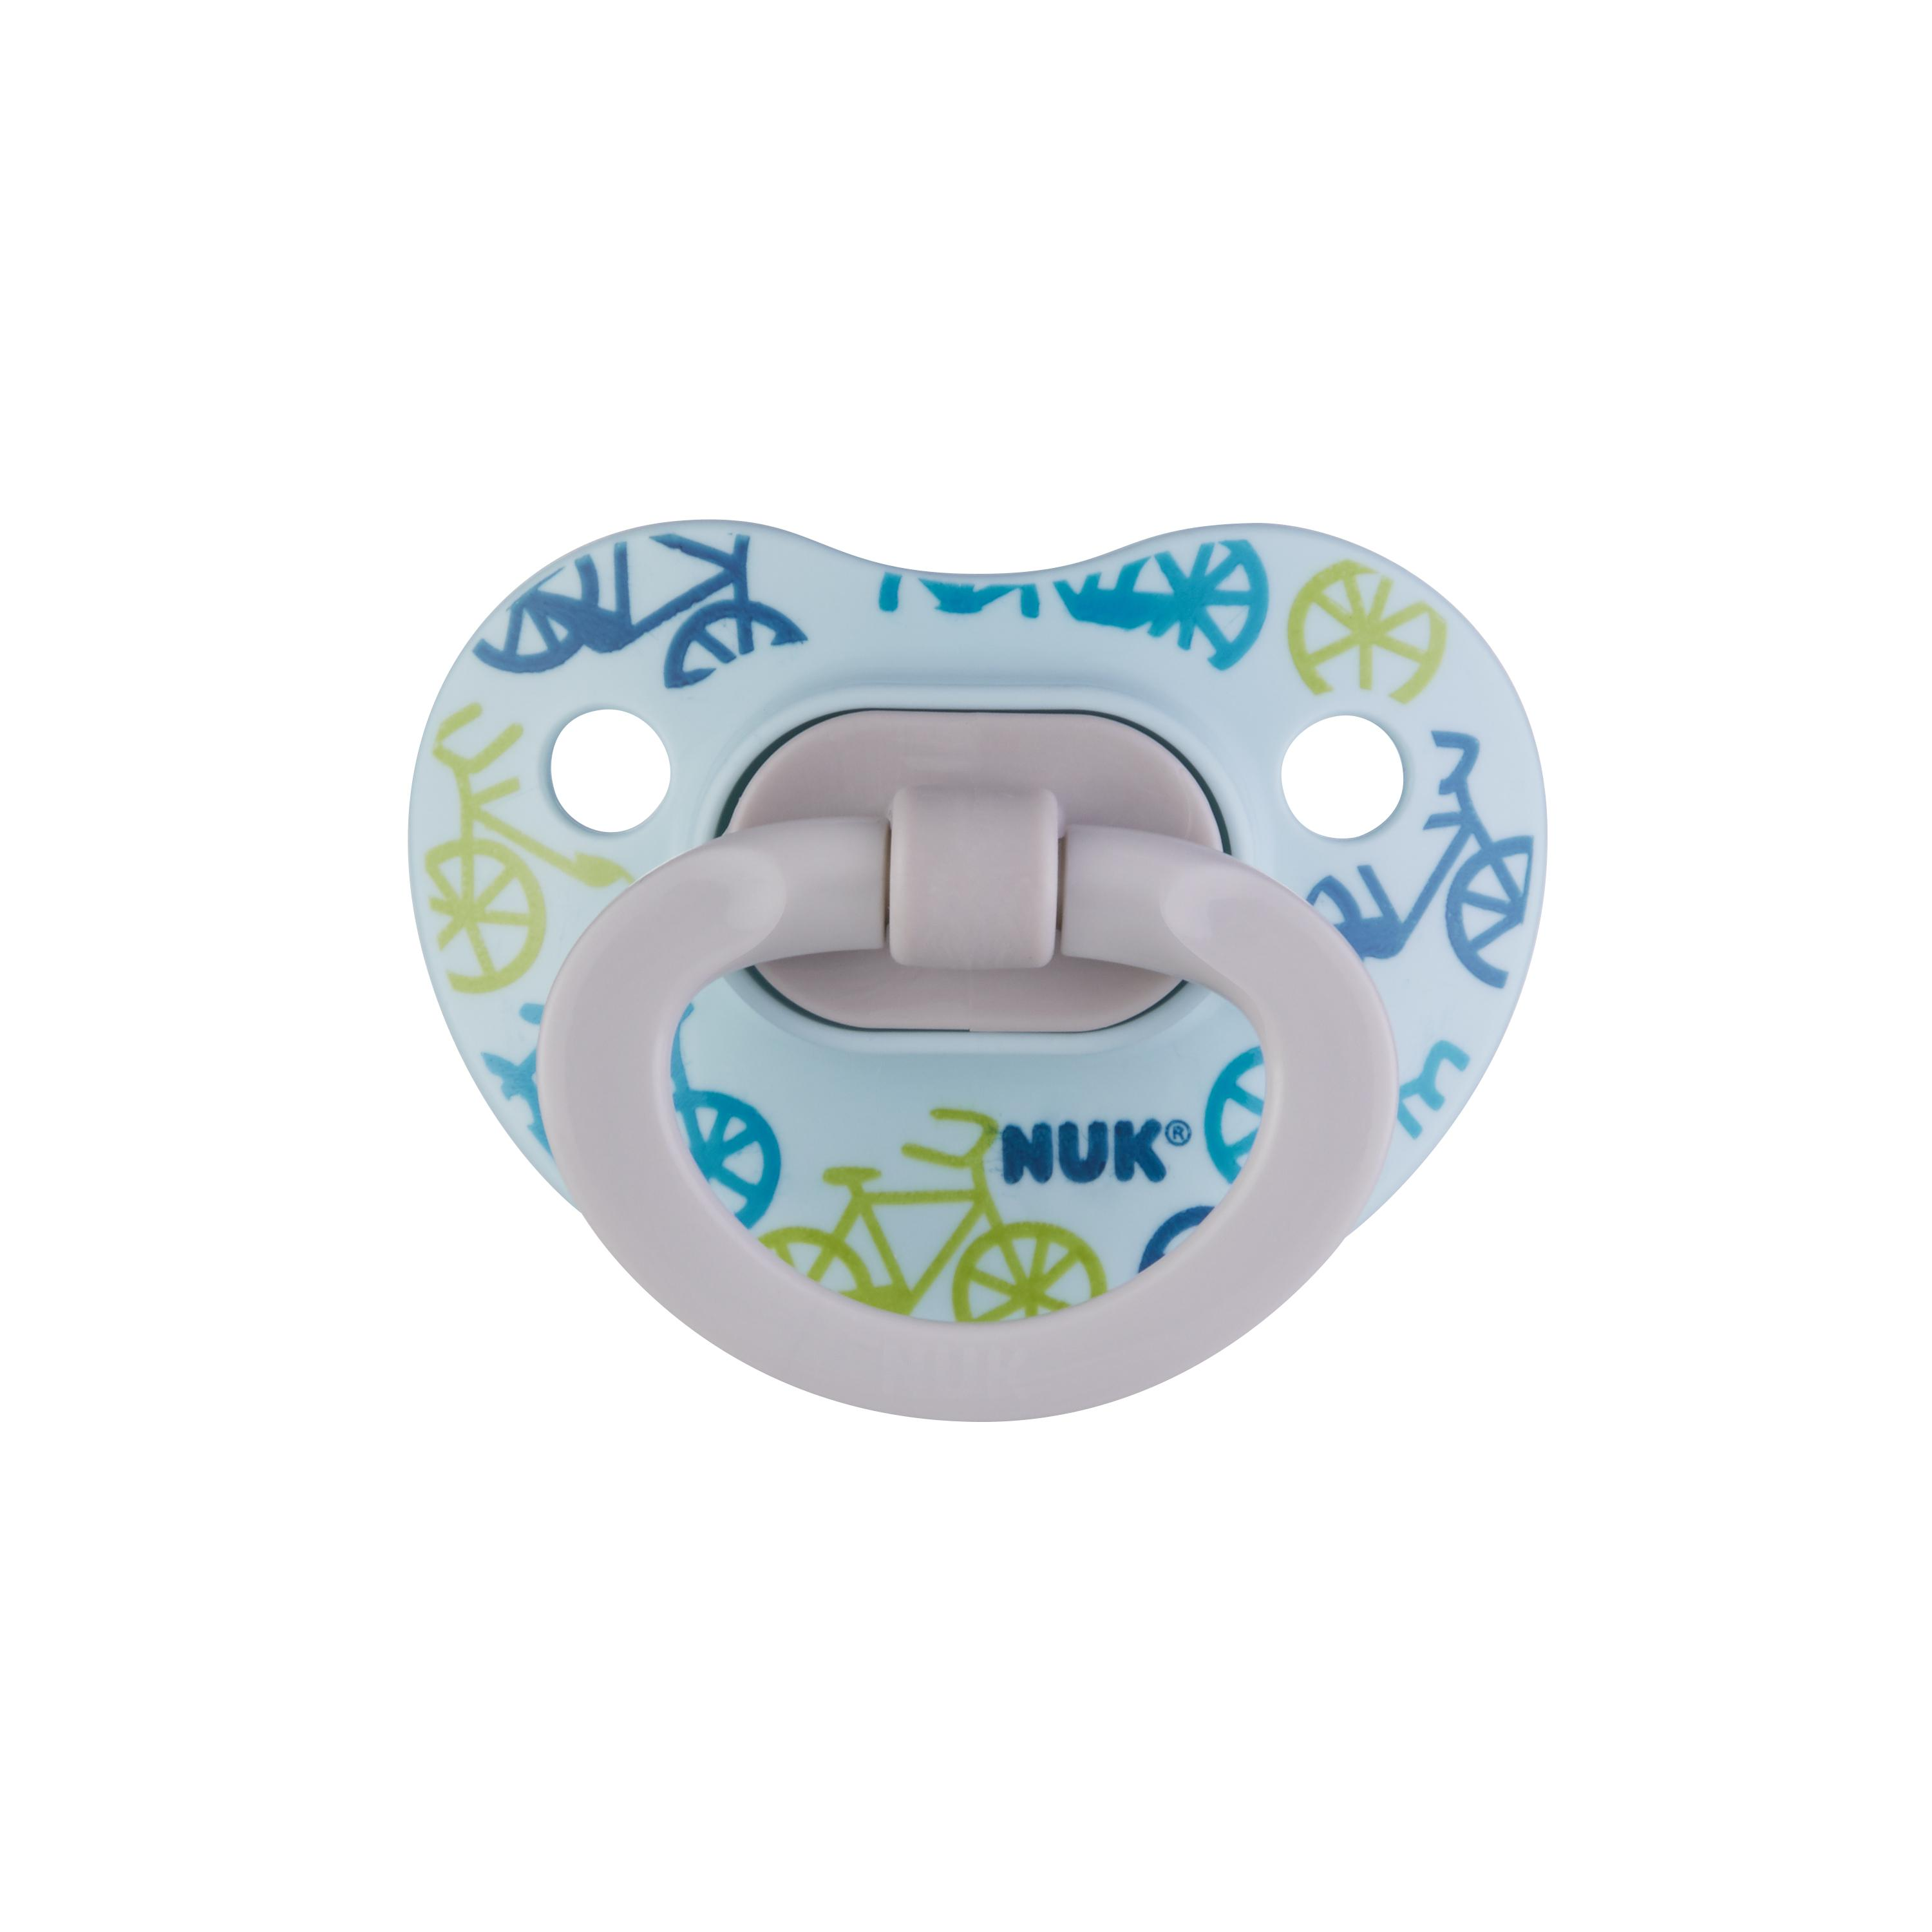 NUK® Glow-in-the-Dark Orthodontic Pacifiers, 6-18 Months, 2-Pack Product Image 4 of 6